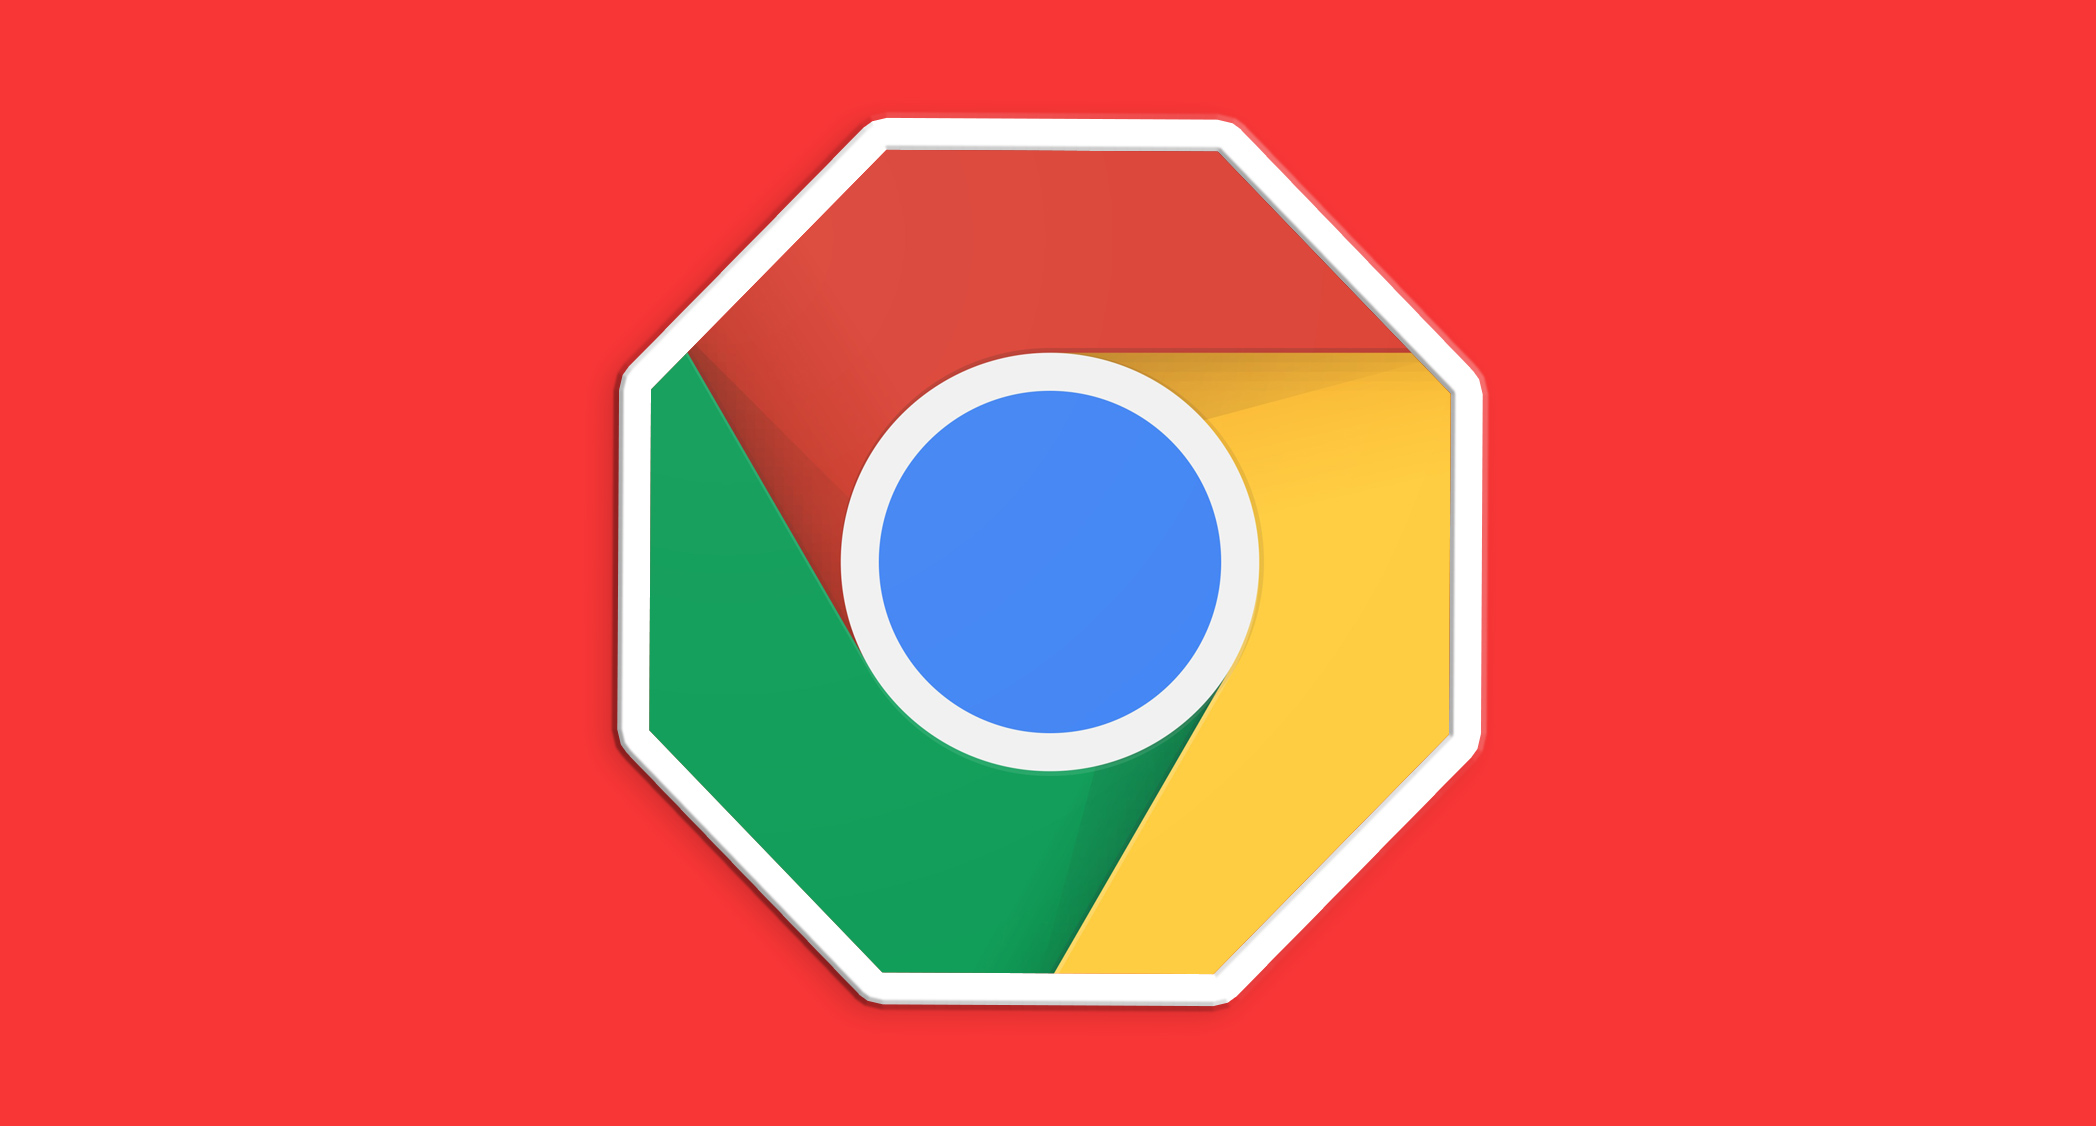 Enlarge / A Totally Not Official Rendering Of What The Chrome Adblocker  Logo Might Look Like.